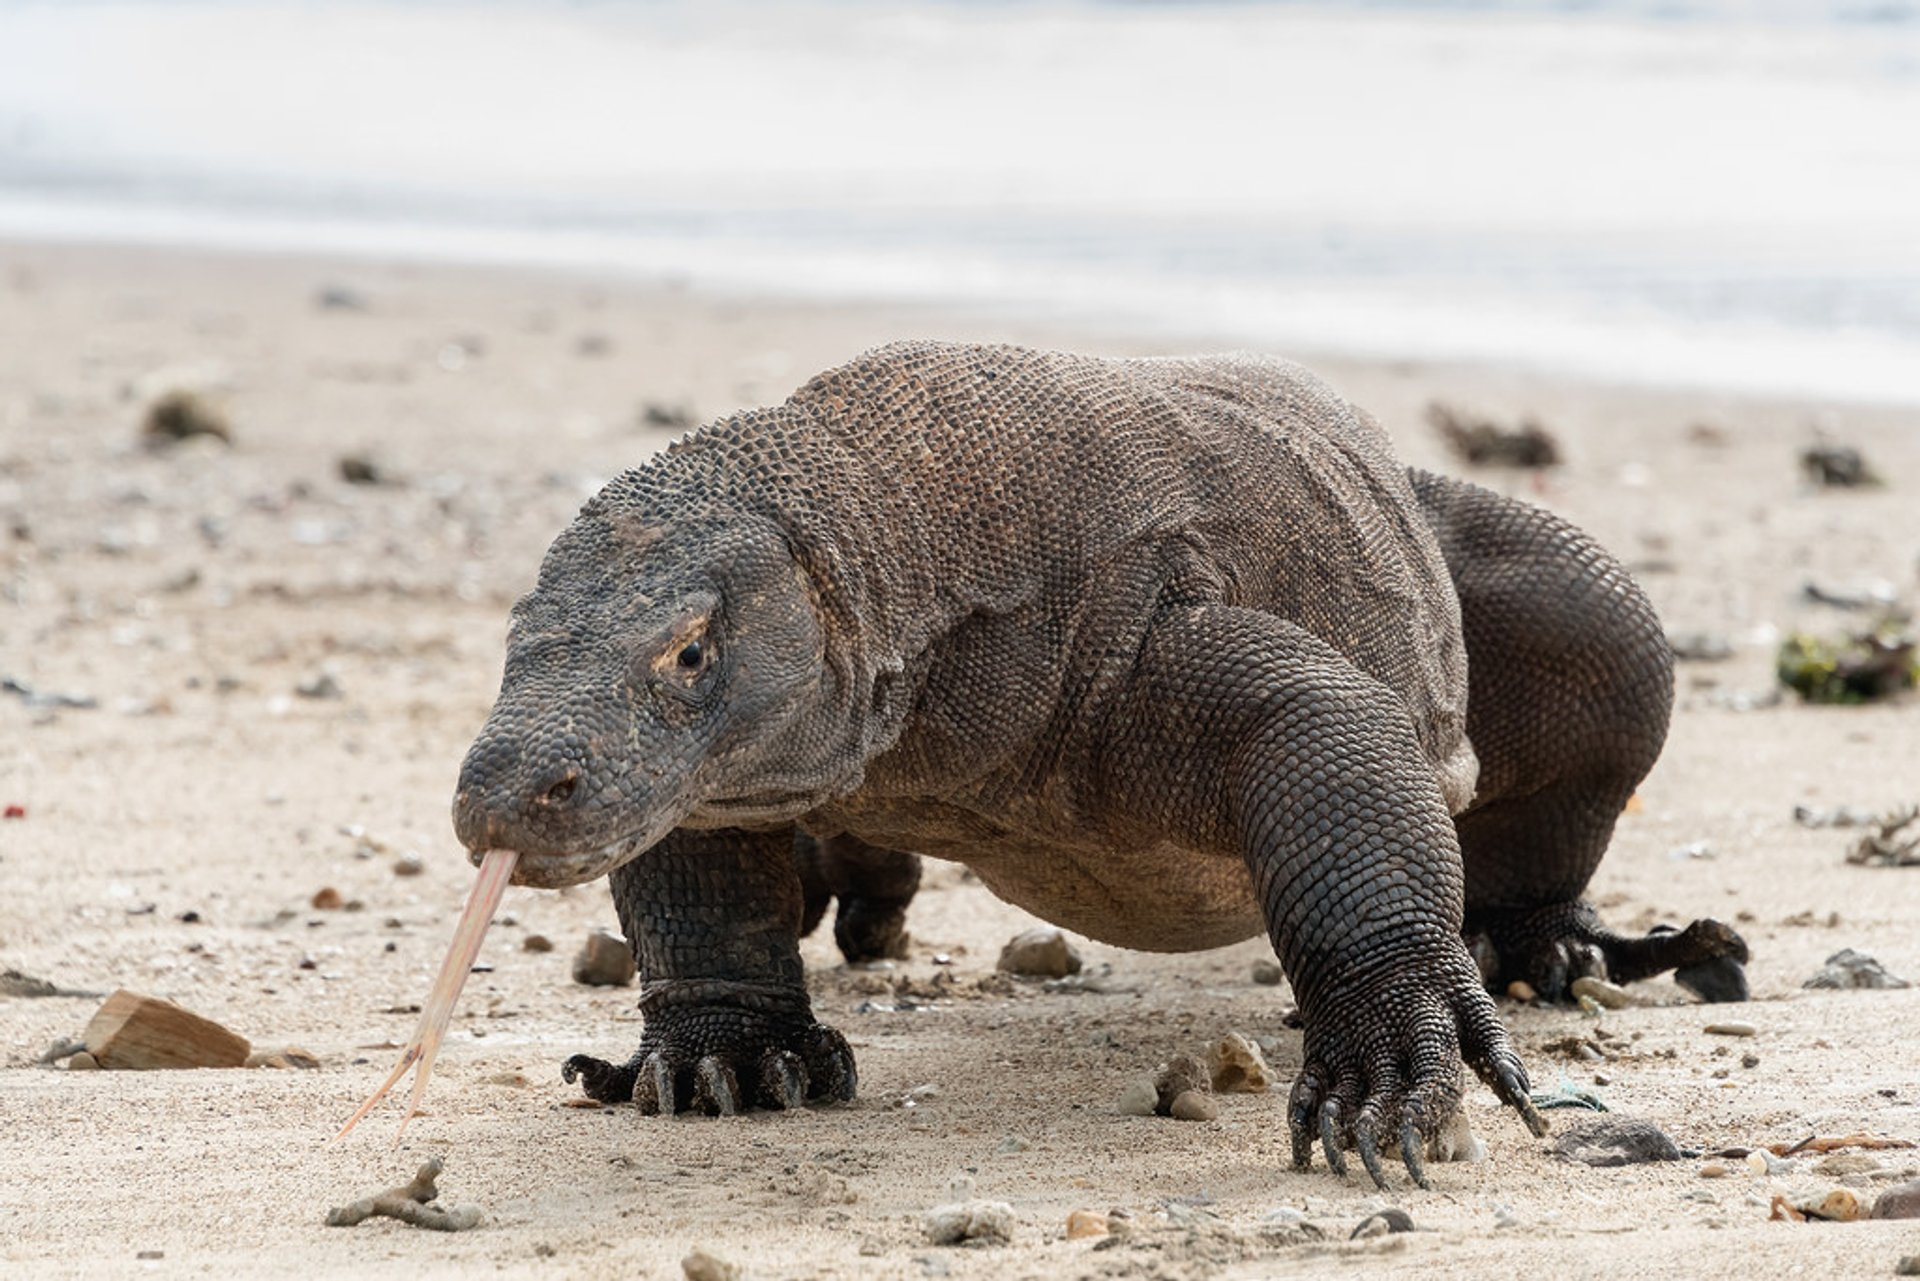 Best time to see Komodo Dragons in Indonesia 2020